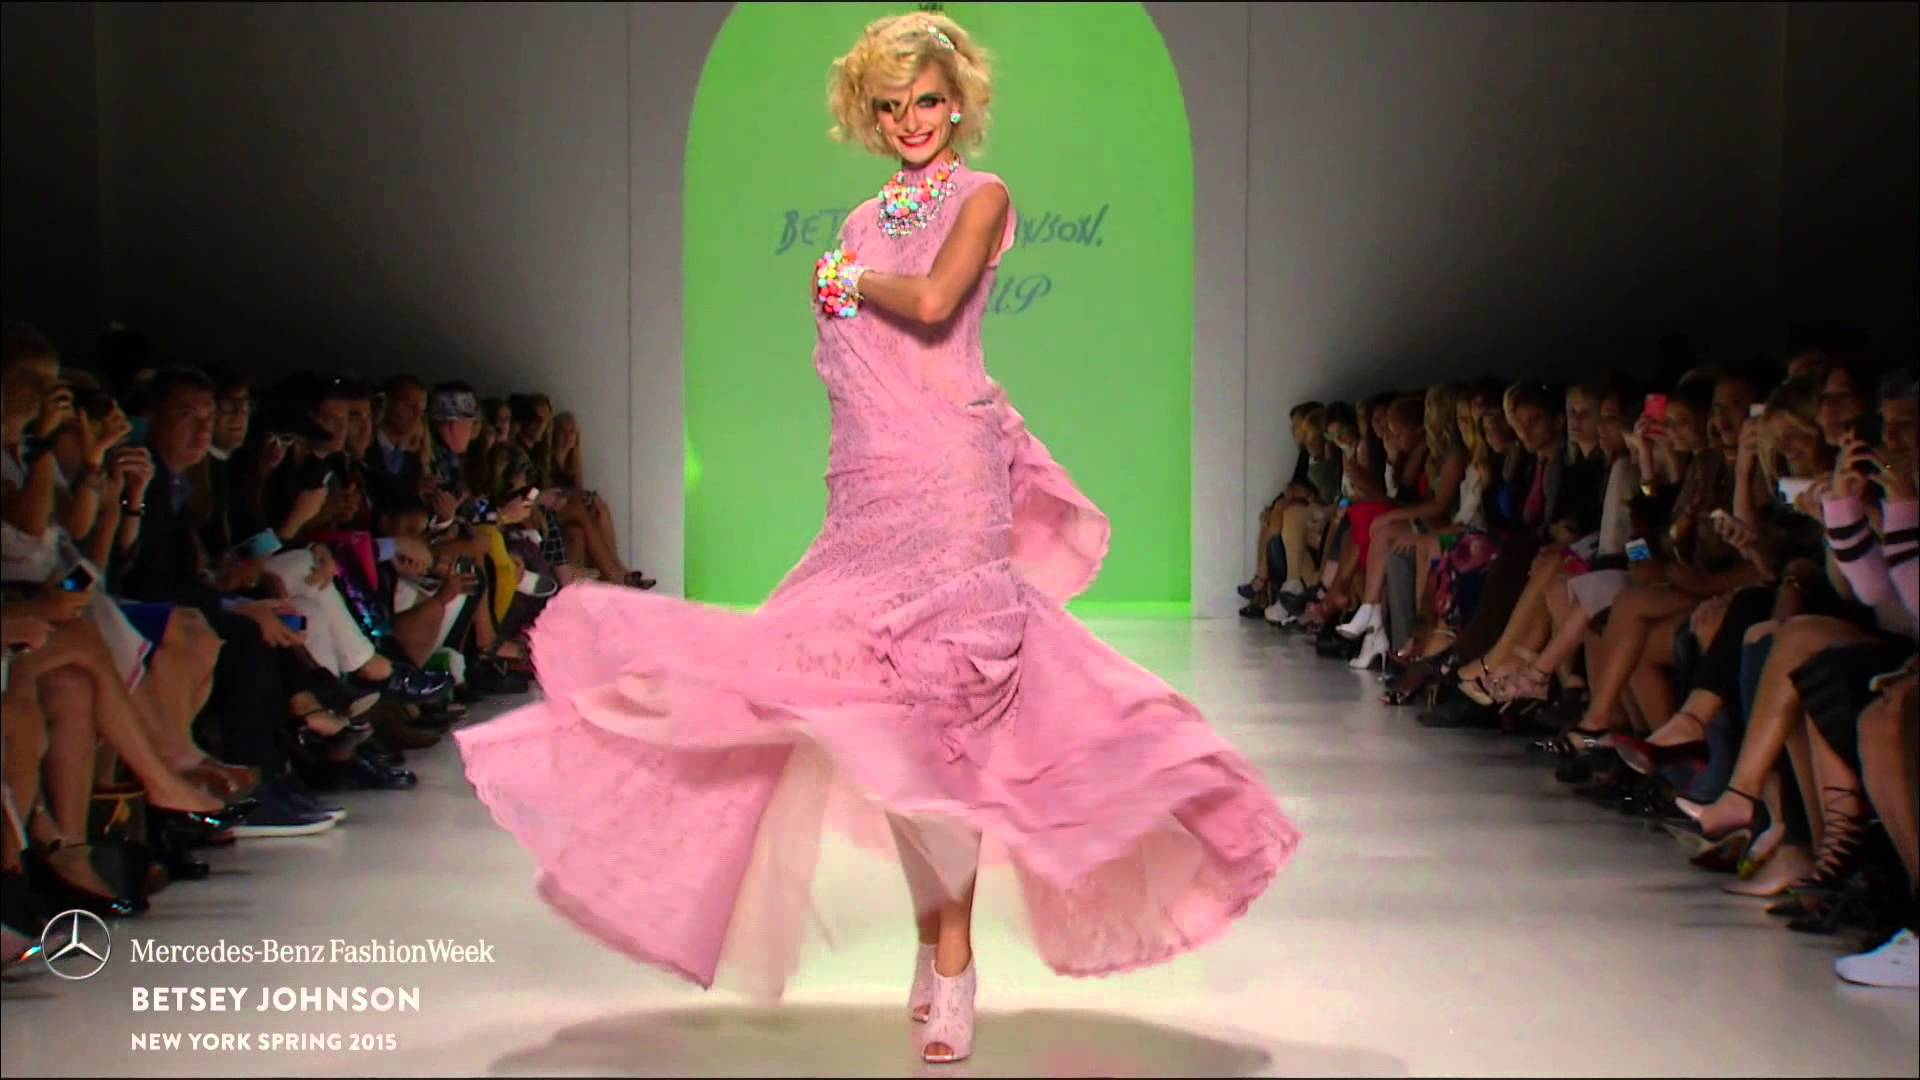 MERCEDES-BENZ FASHION WEEK S/S15 COLLECTIONS